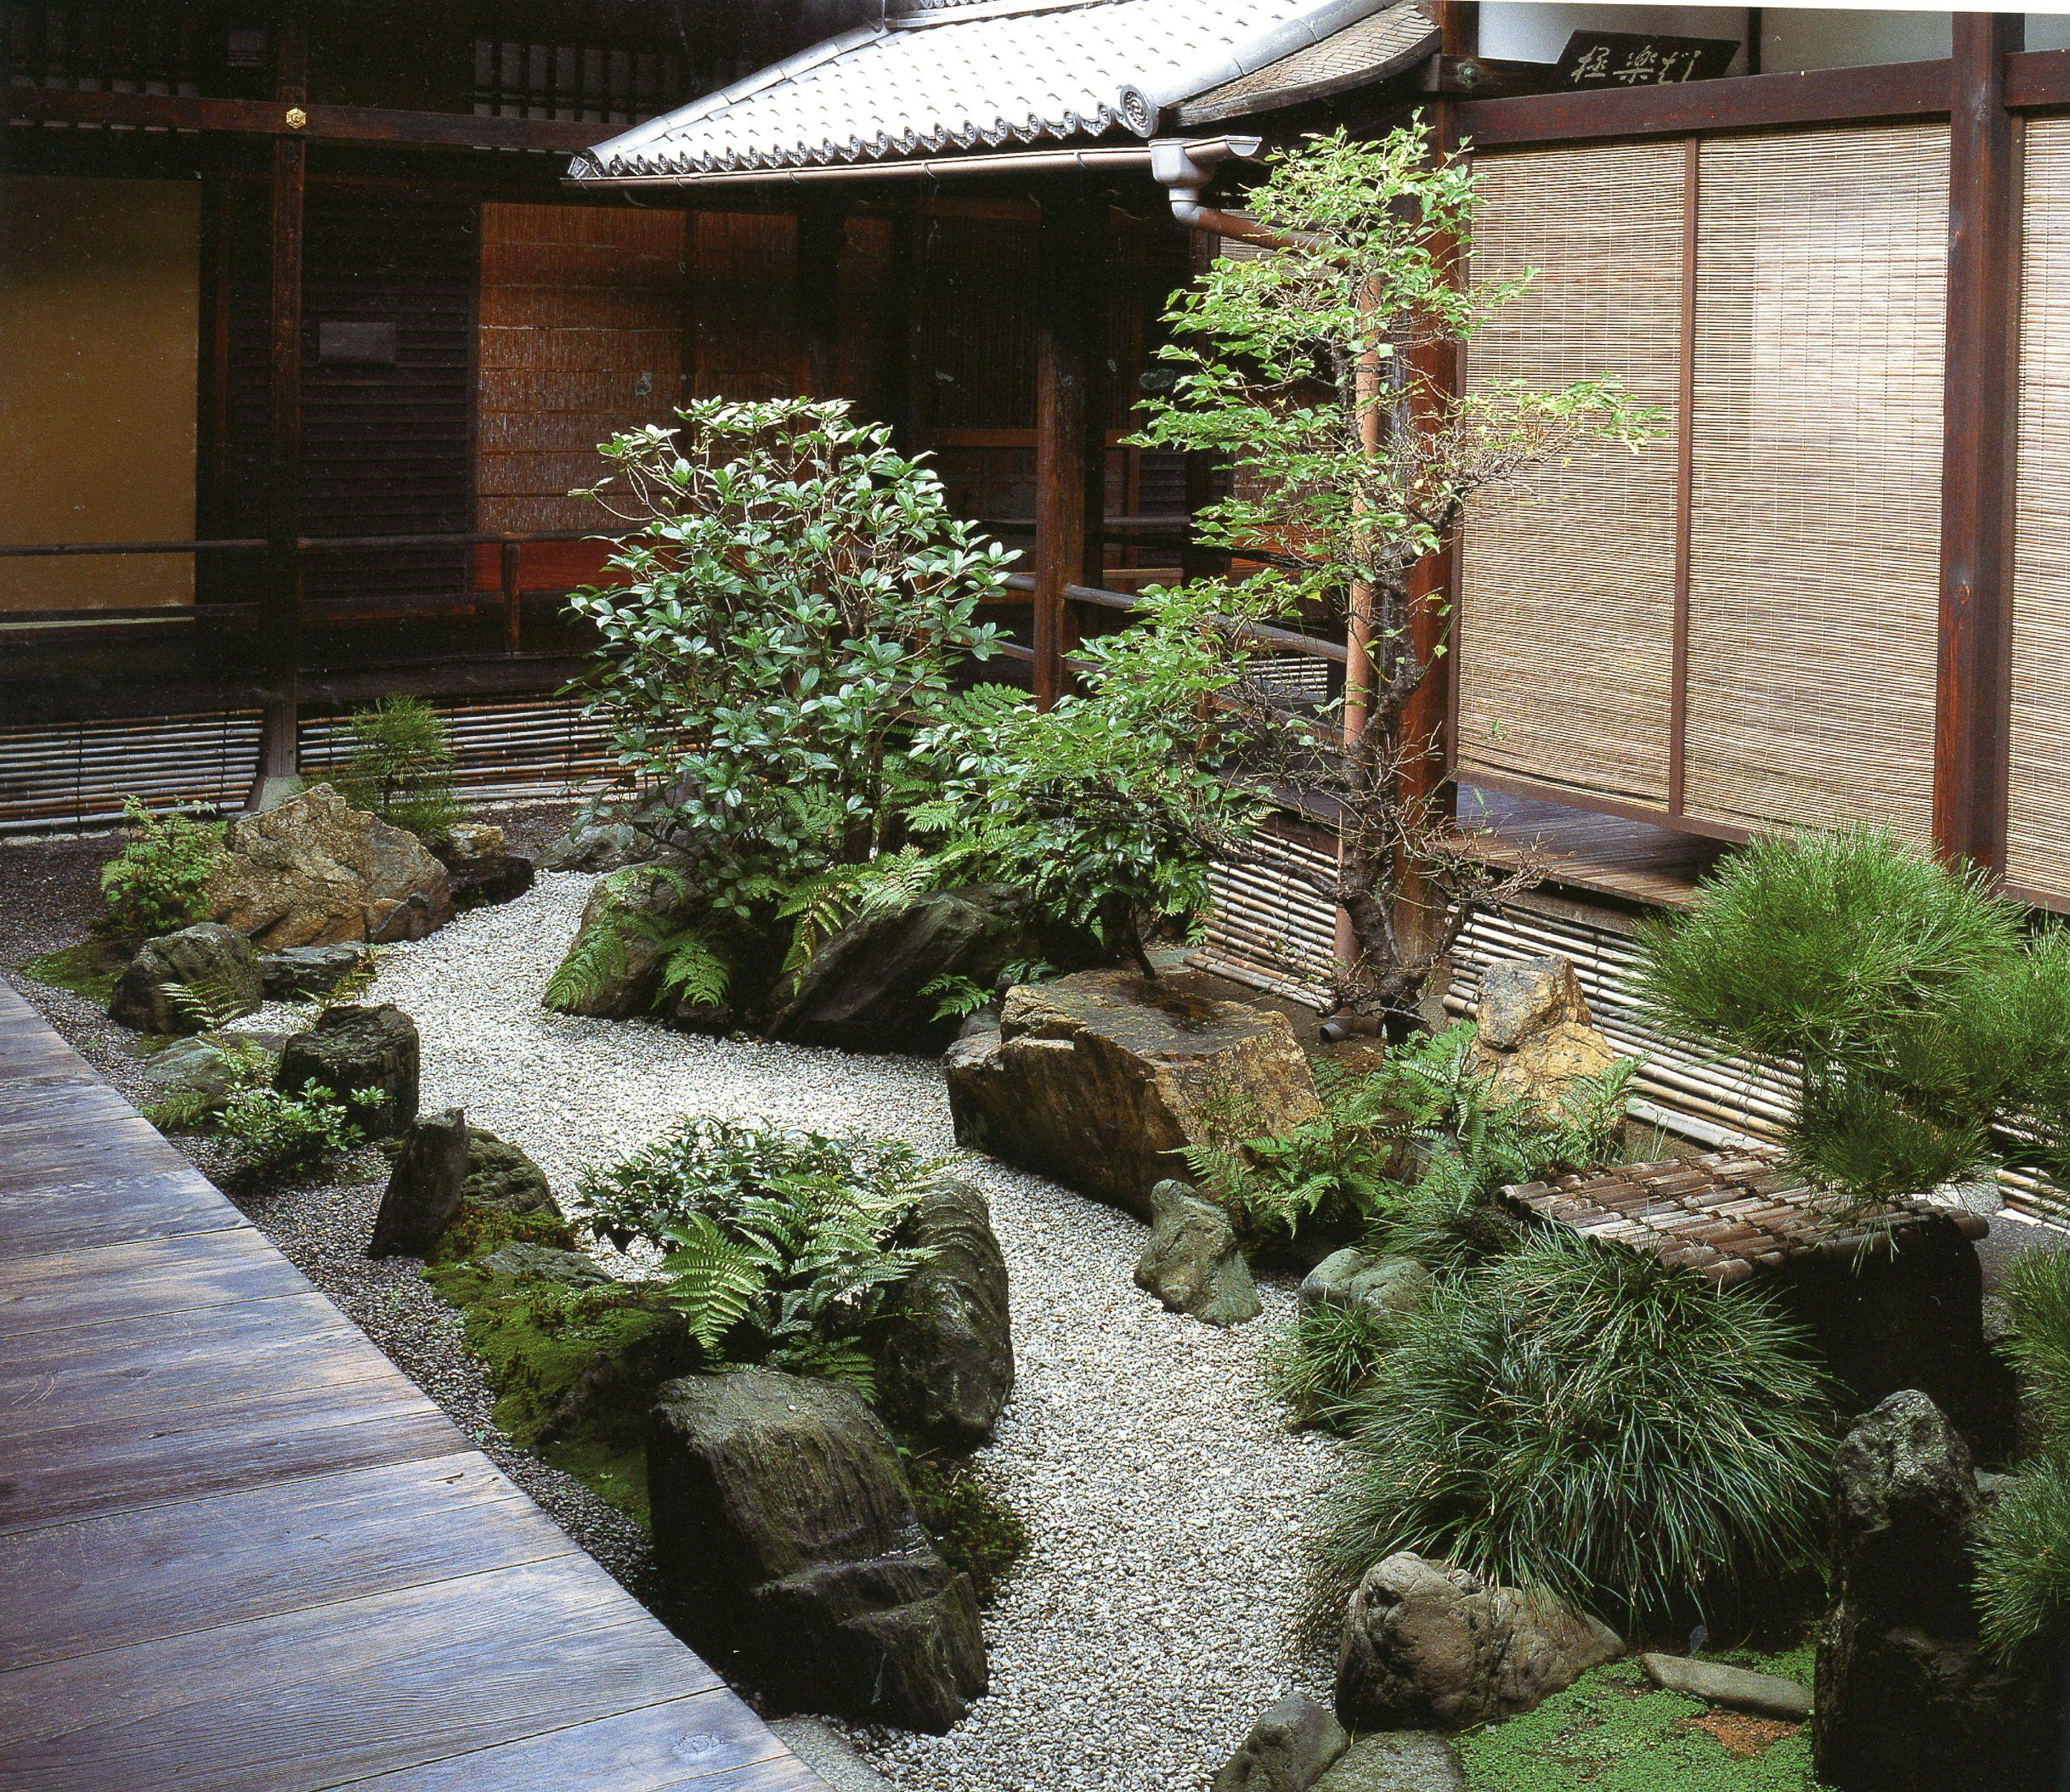 0c646a22bc9e7c376850cd5be109a4fb - Landscapes For Small Spaces Japanese Courtyard Gardens